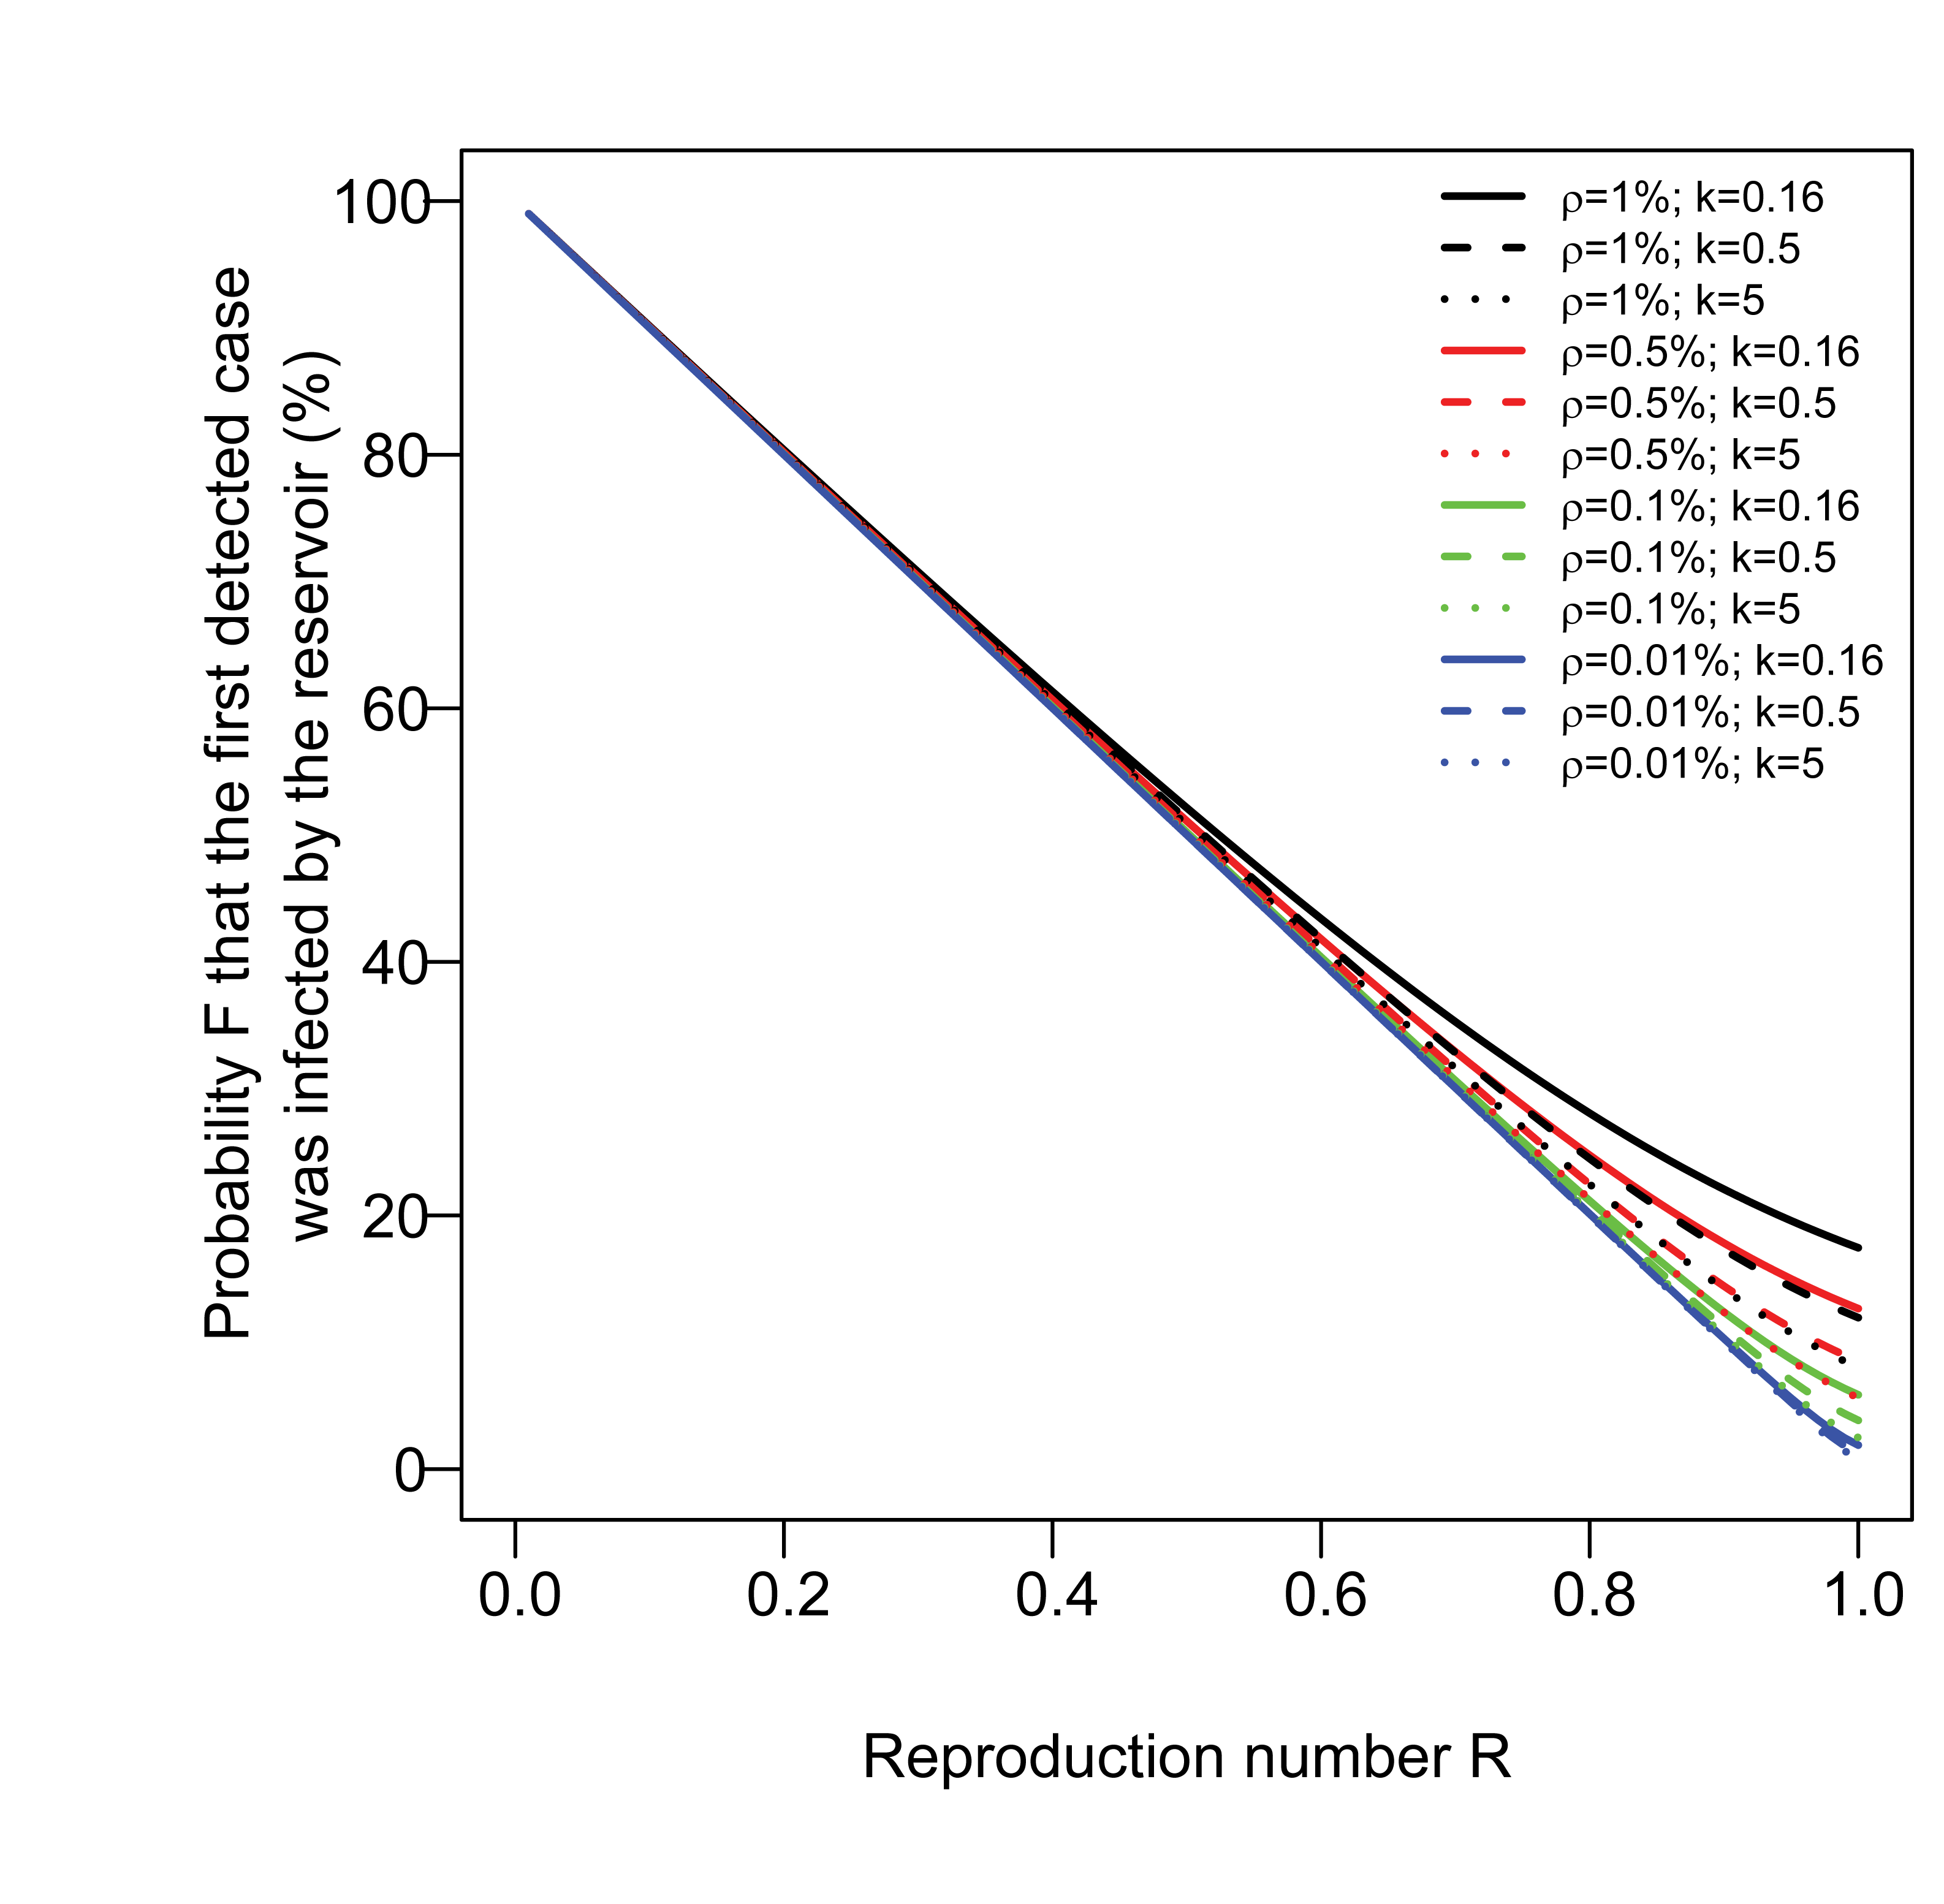 Probability <i>F</i> that the first detected case in a cluster was infected by the reservoir, as a function of the reproduction number <i>R</i>.